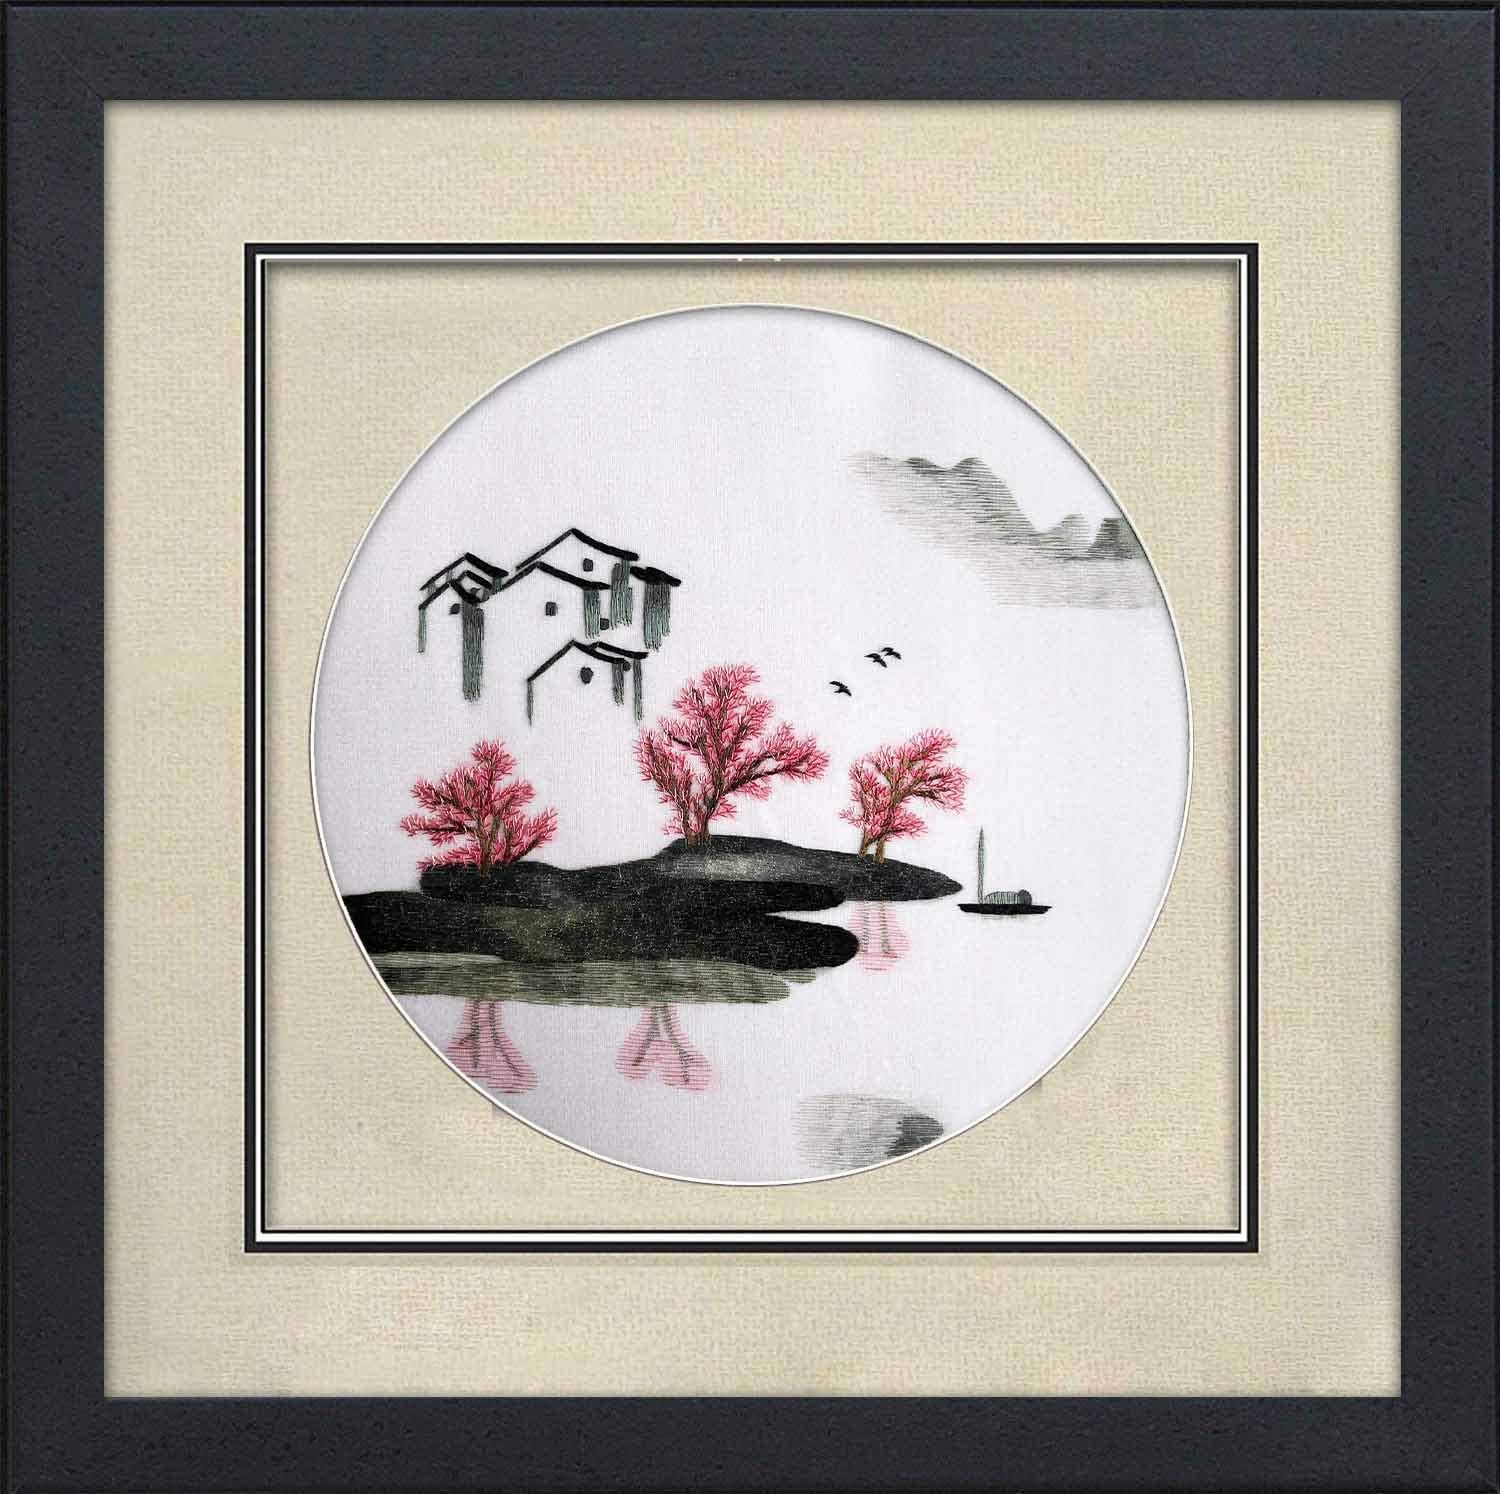 King Silk Art 100% Handmade Framed Landscape Embroidery of Lake Tree Boat & House Chinese Painting Gift Oriental Asian Wall Art Décor Artwork Hanging Picture Gallery